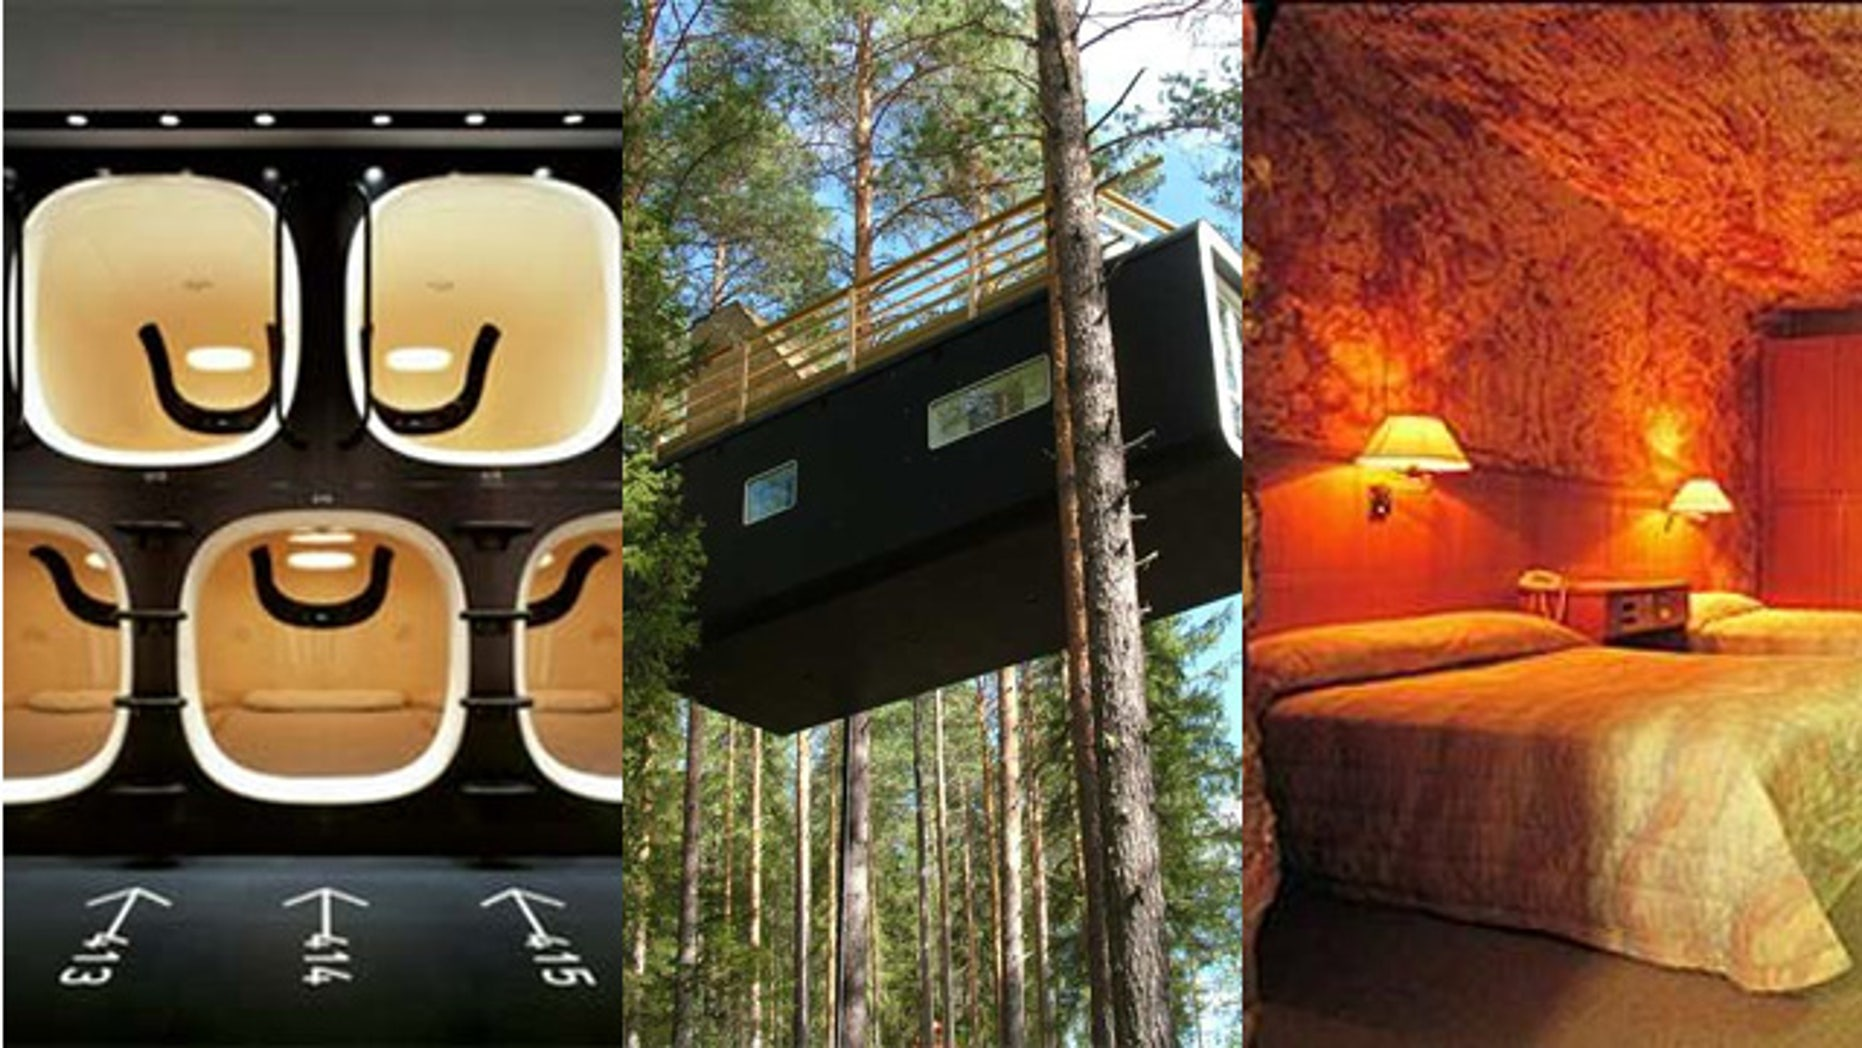 You can stay at these weird hotels like 9 Hours in Japan, Treehotel in Sweden or the Desert Cave Hotel in Australia.